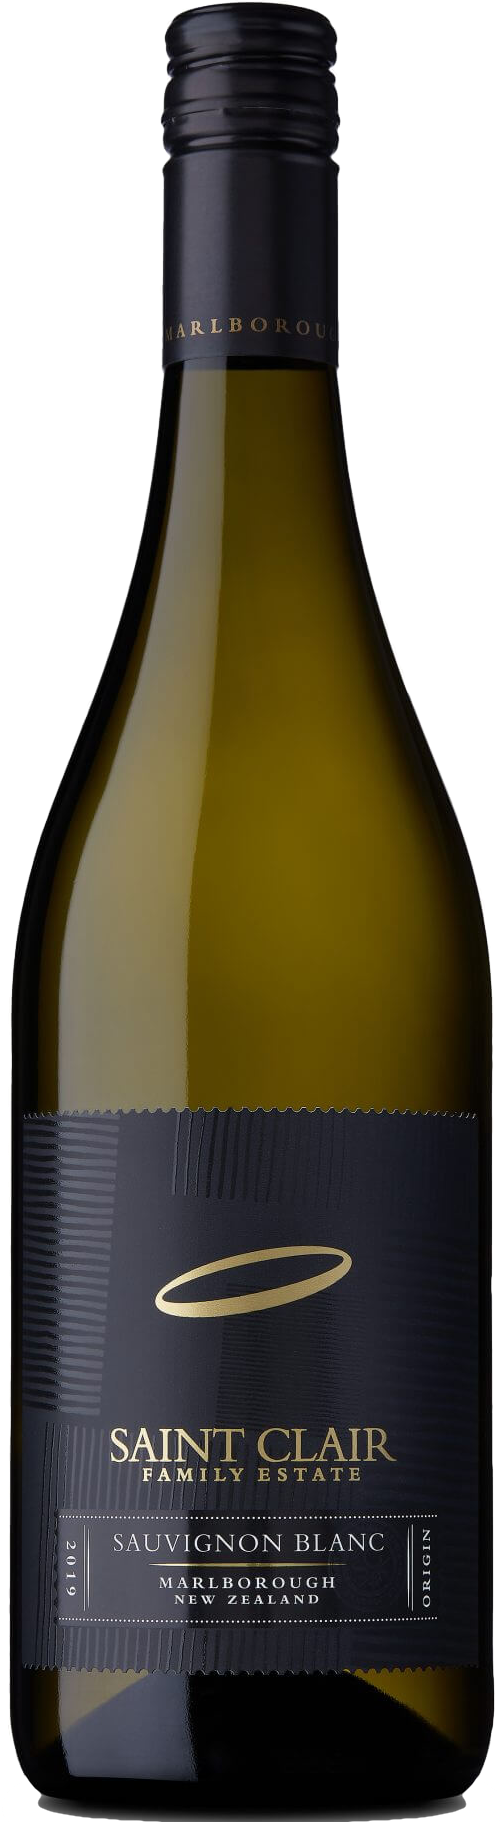 Saint Clair Family Estate Sauvignon Blanc 2019